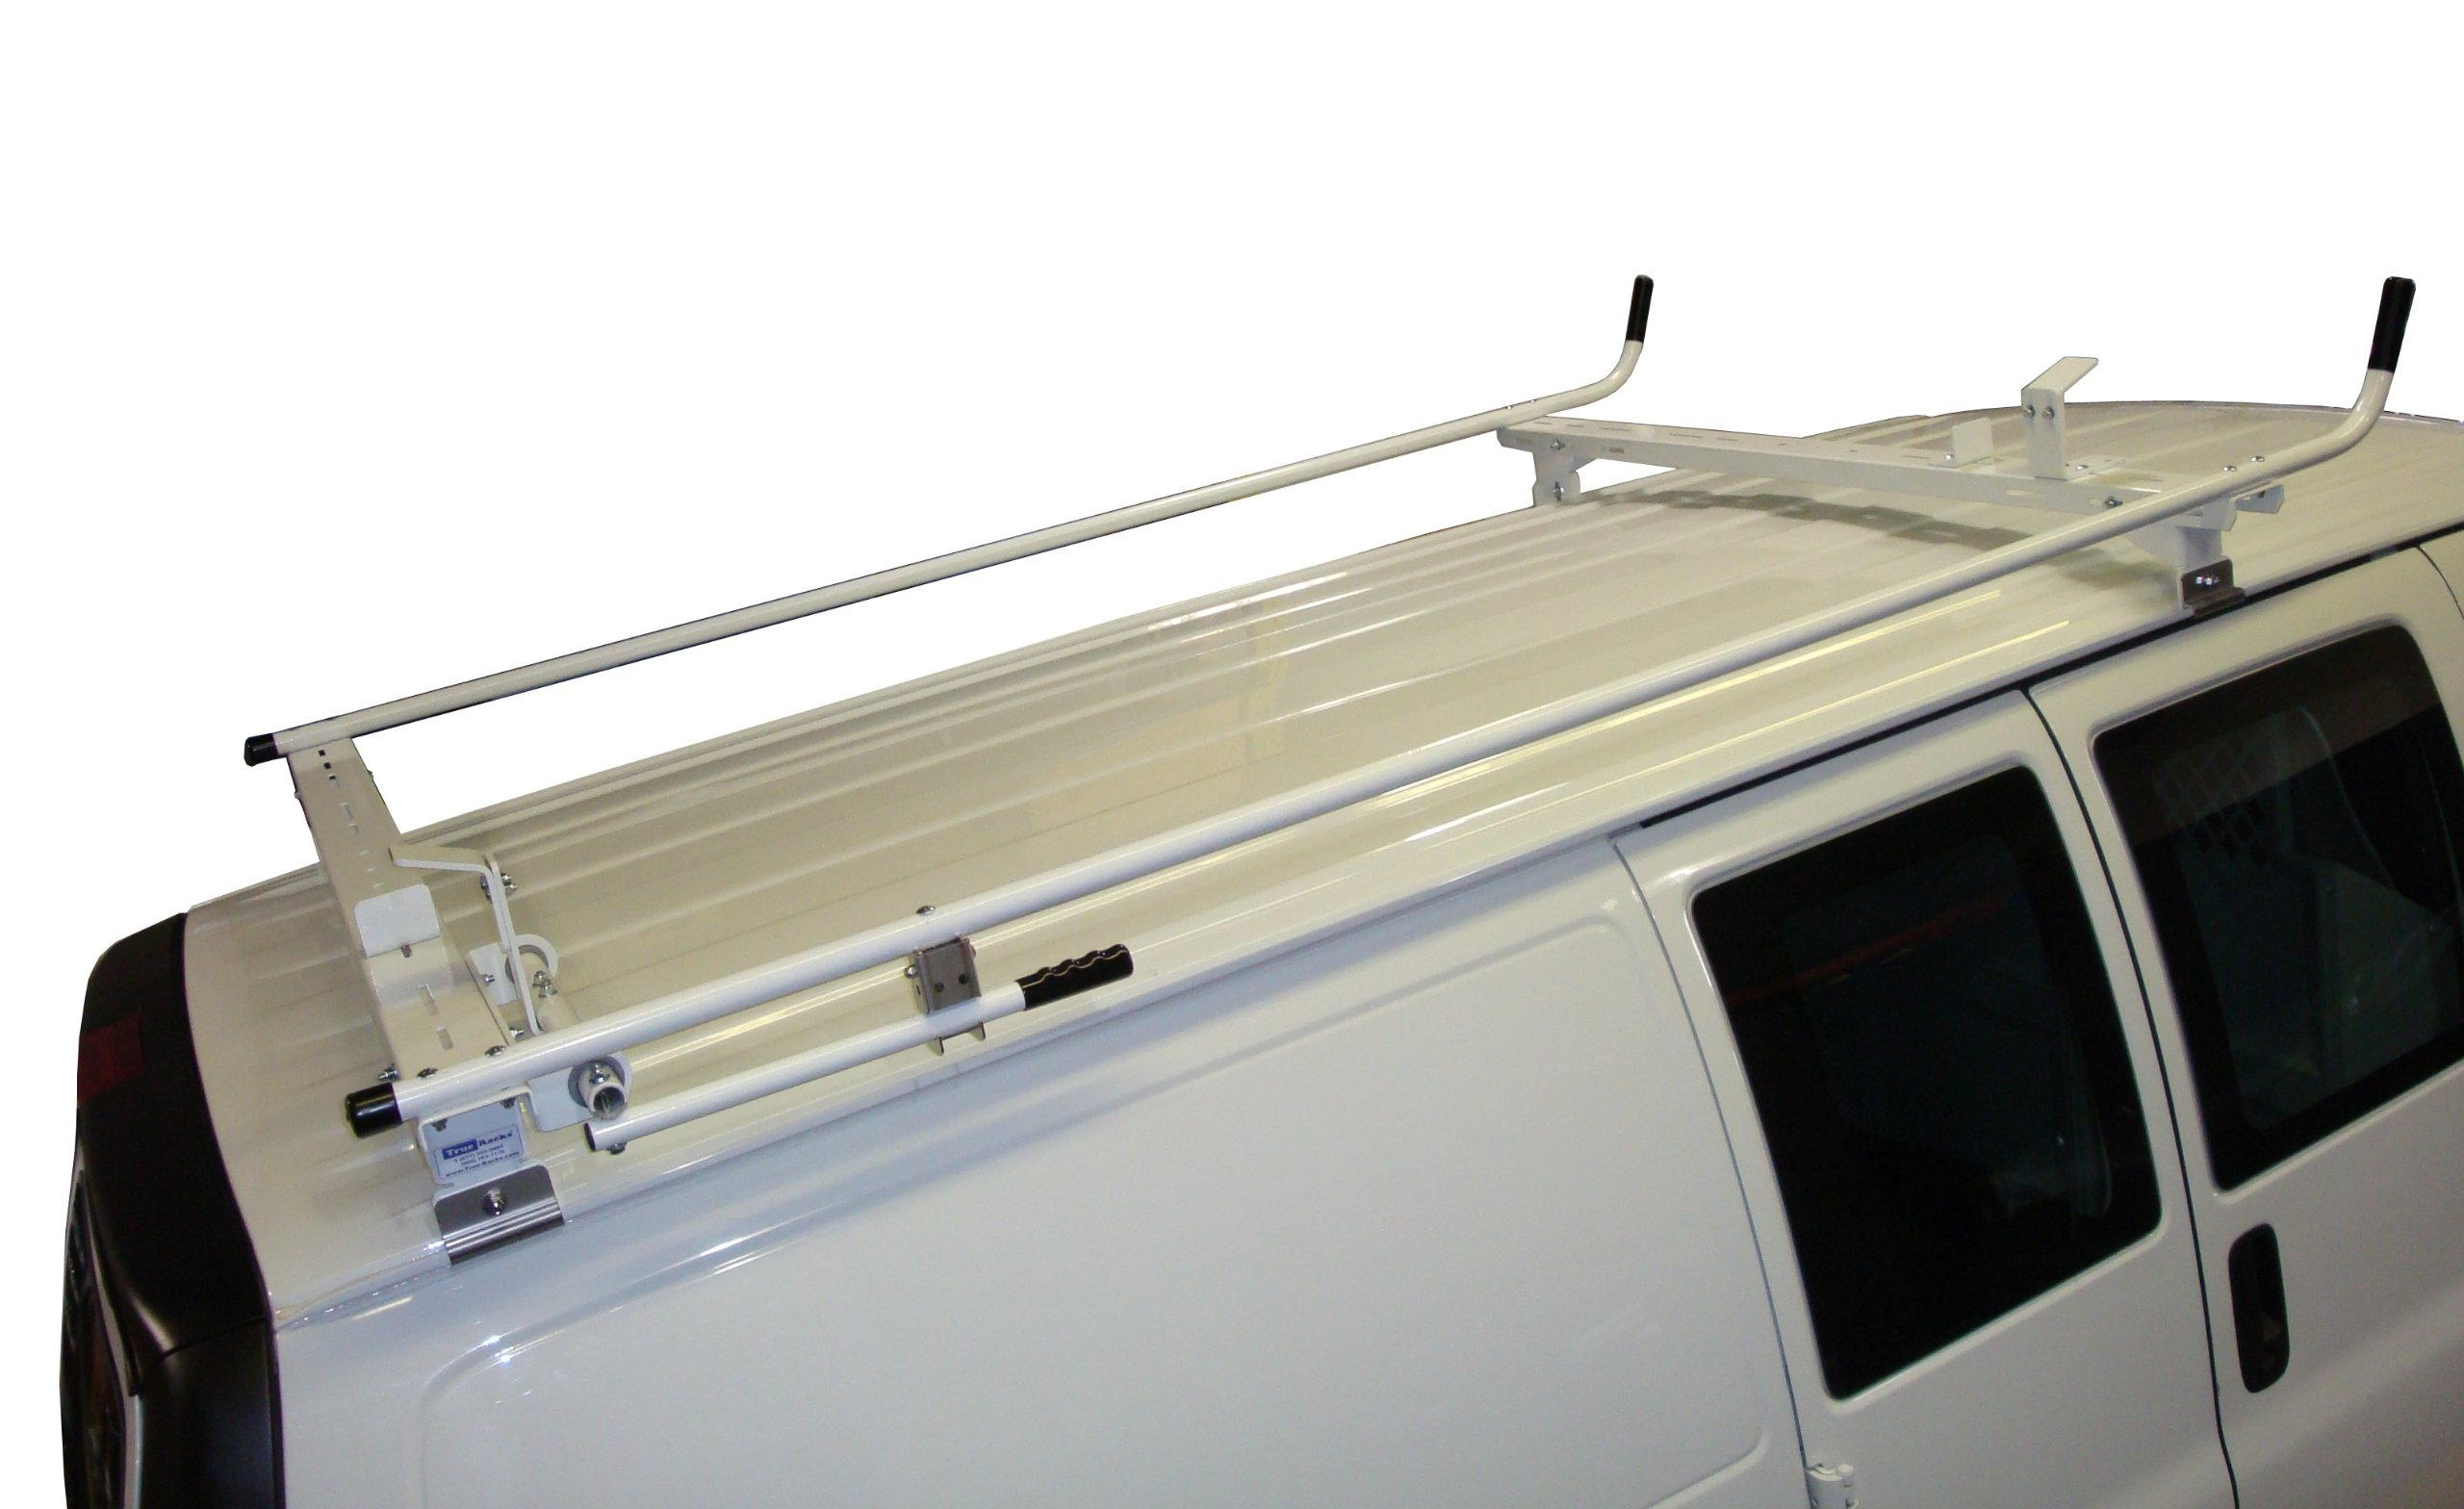 Aluminum Van Ladder Rack - Ford Econoline - Single Lock Down by True Racks (Image #1)